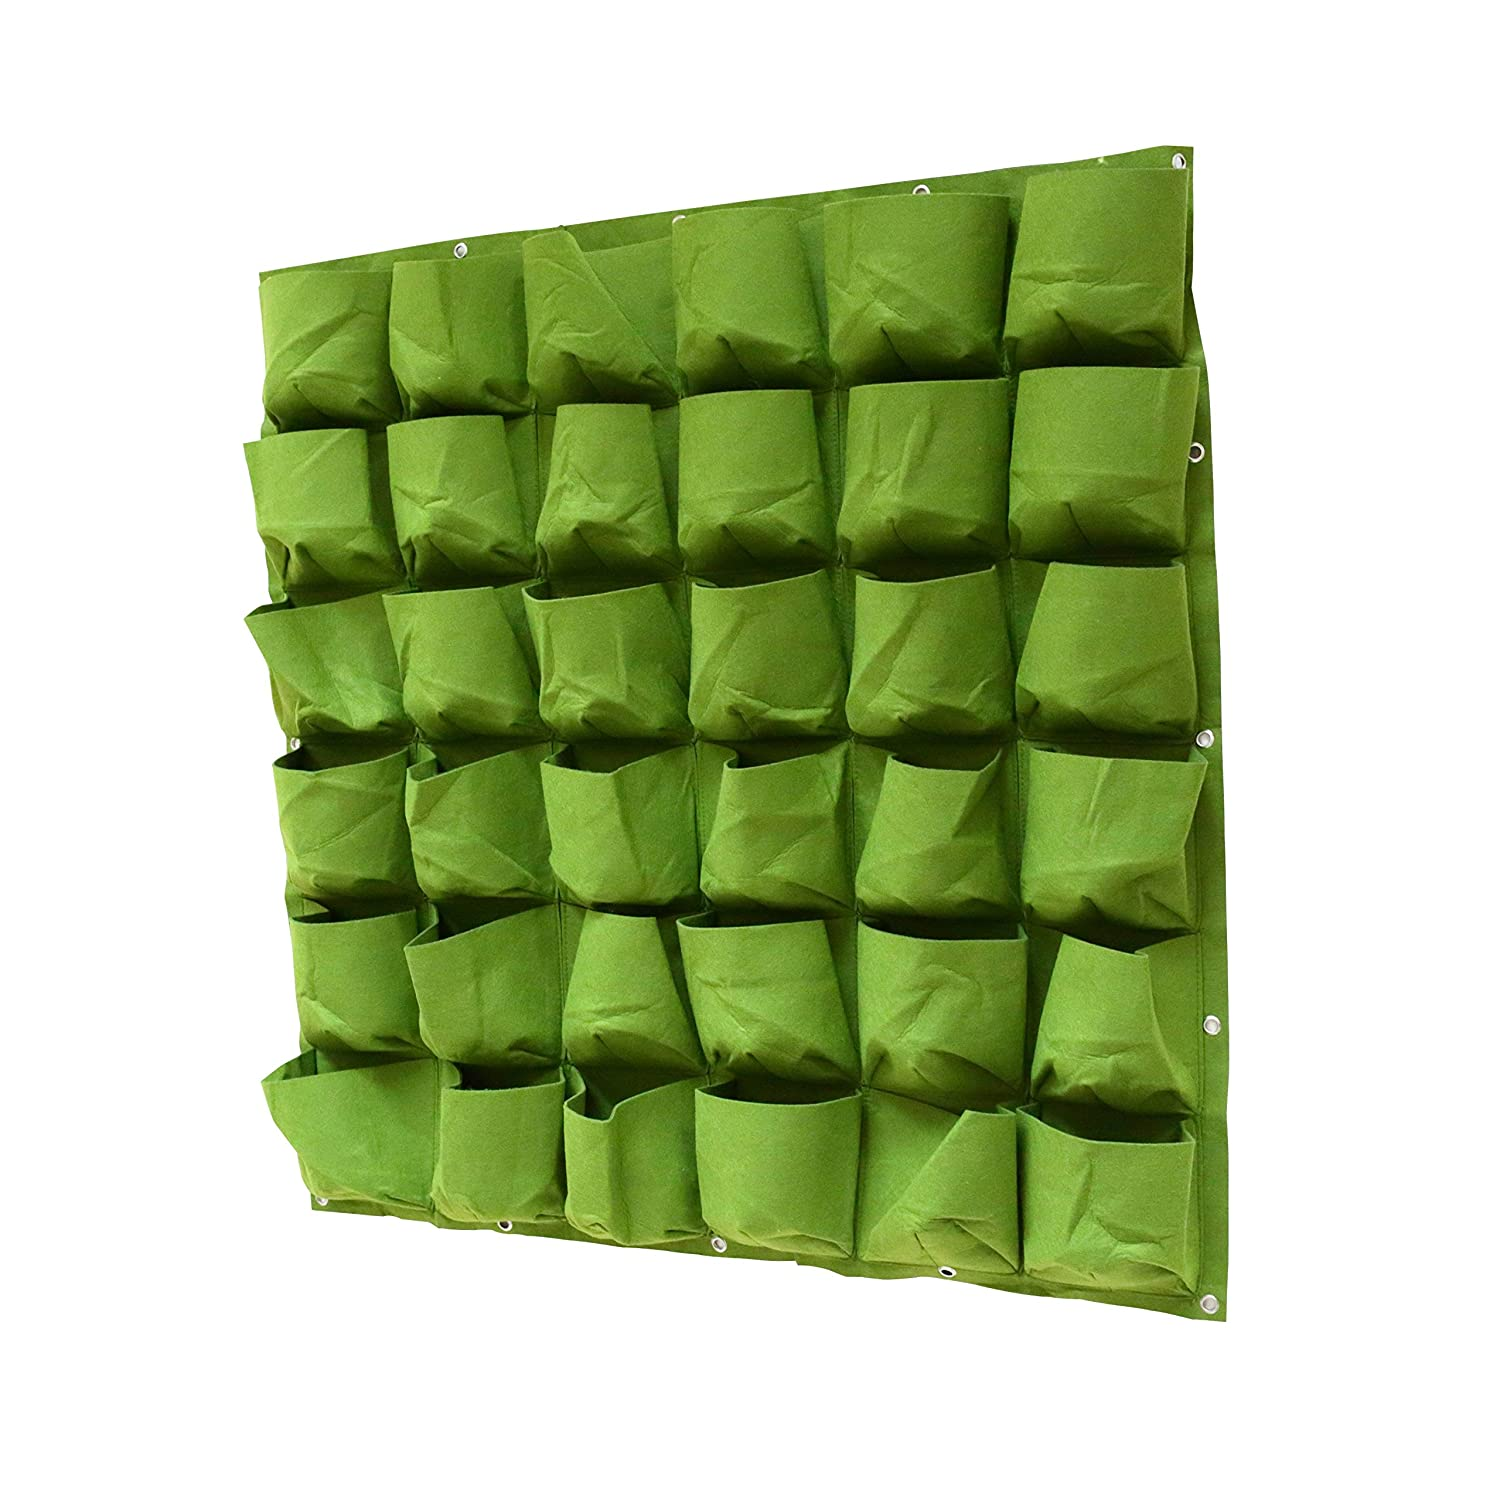 Amazon.com: Prudance Vertical Wall Garden Planter, 36 Pockets, Wall Mount  Planter Solution ( 40 In X 40 In ): Garden U0026 Outdoor